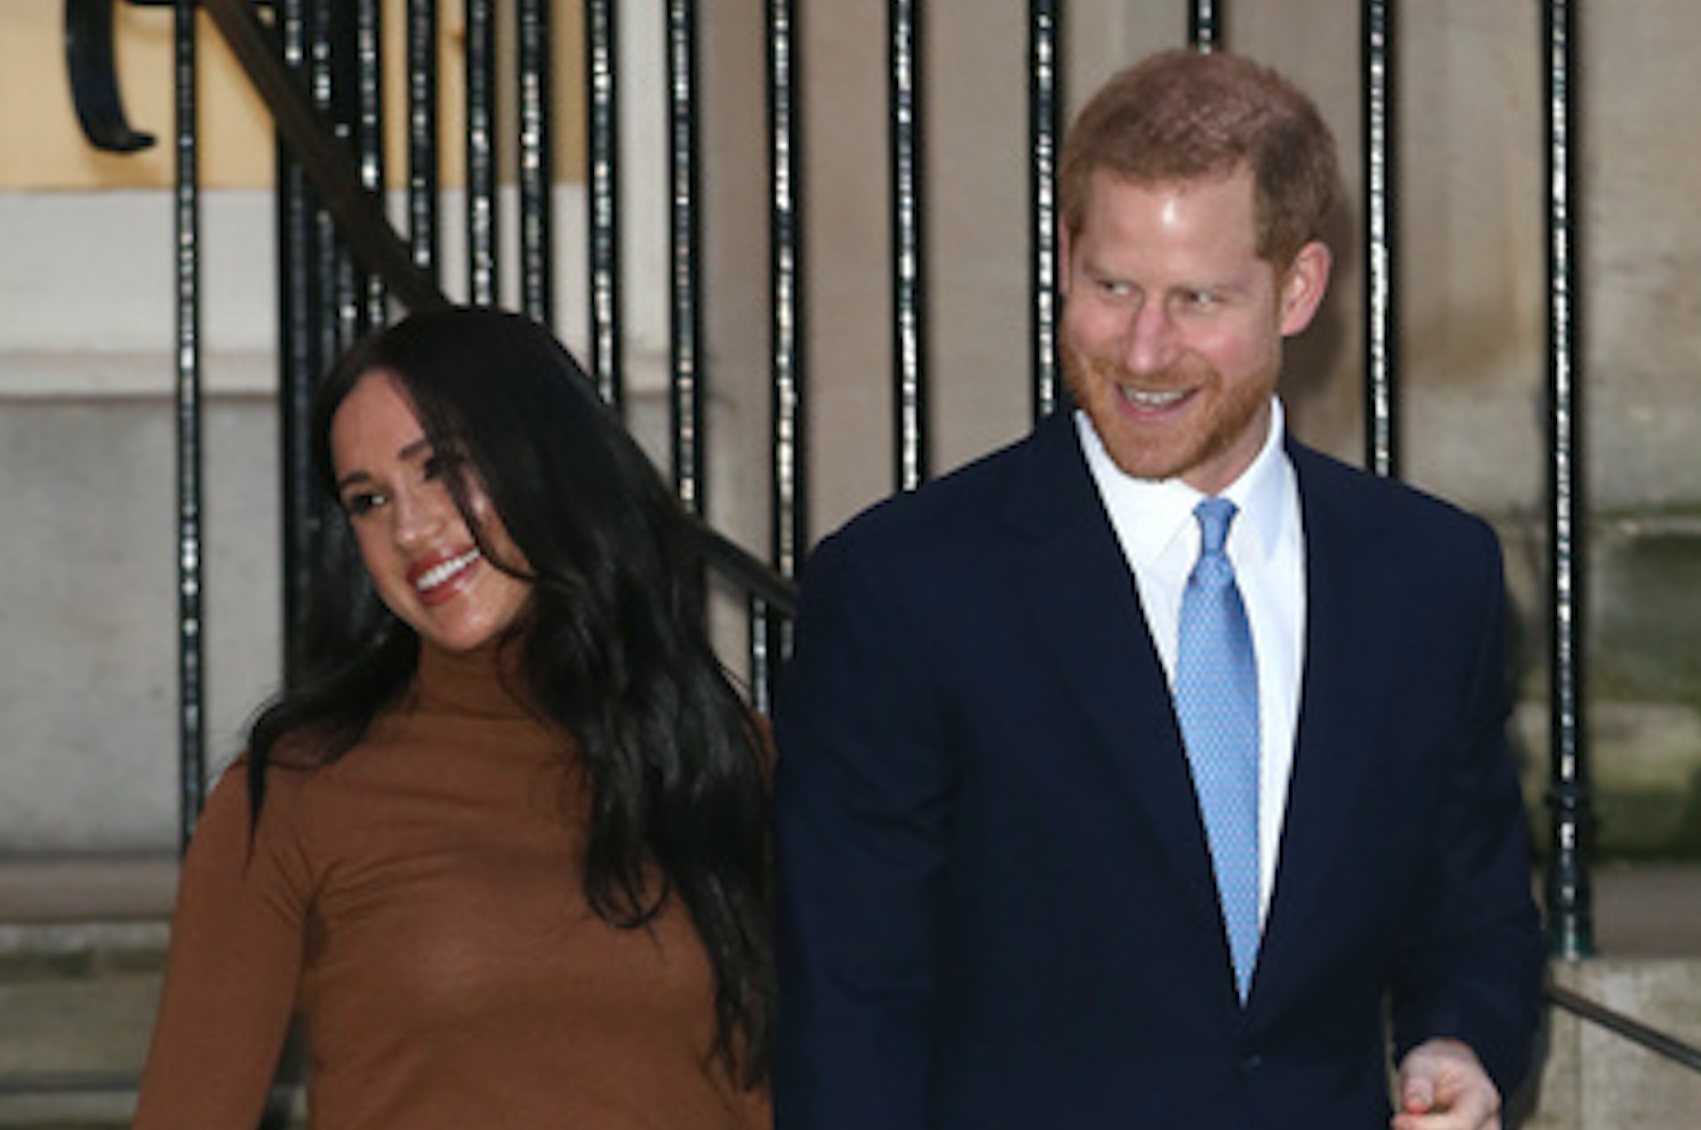 Meghan and Harry 'drop hint they have already set up home in Canada'